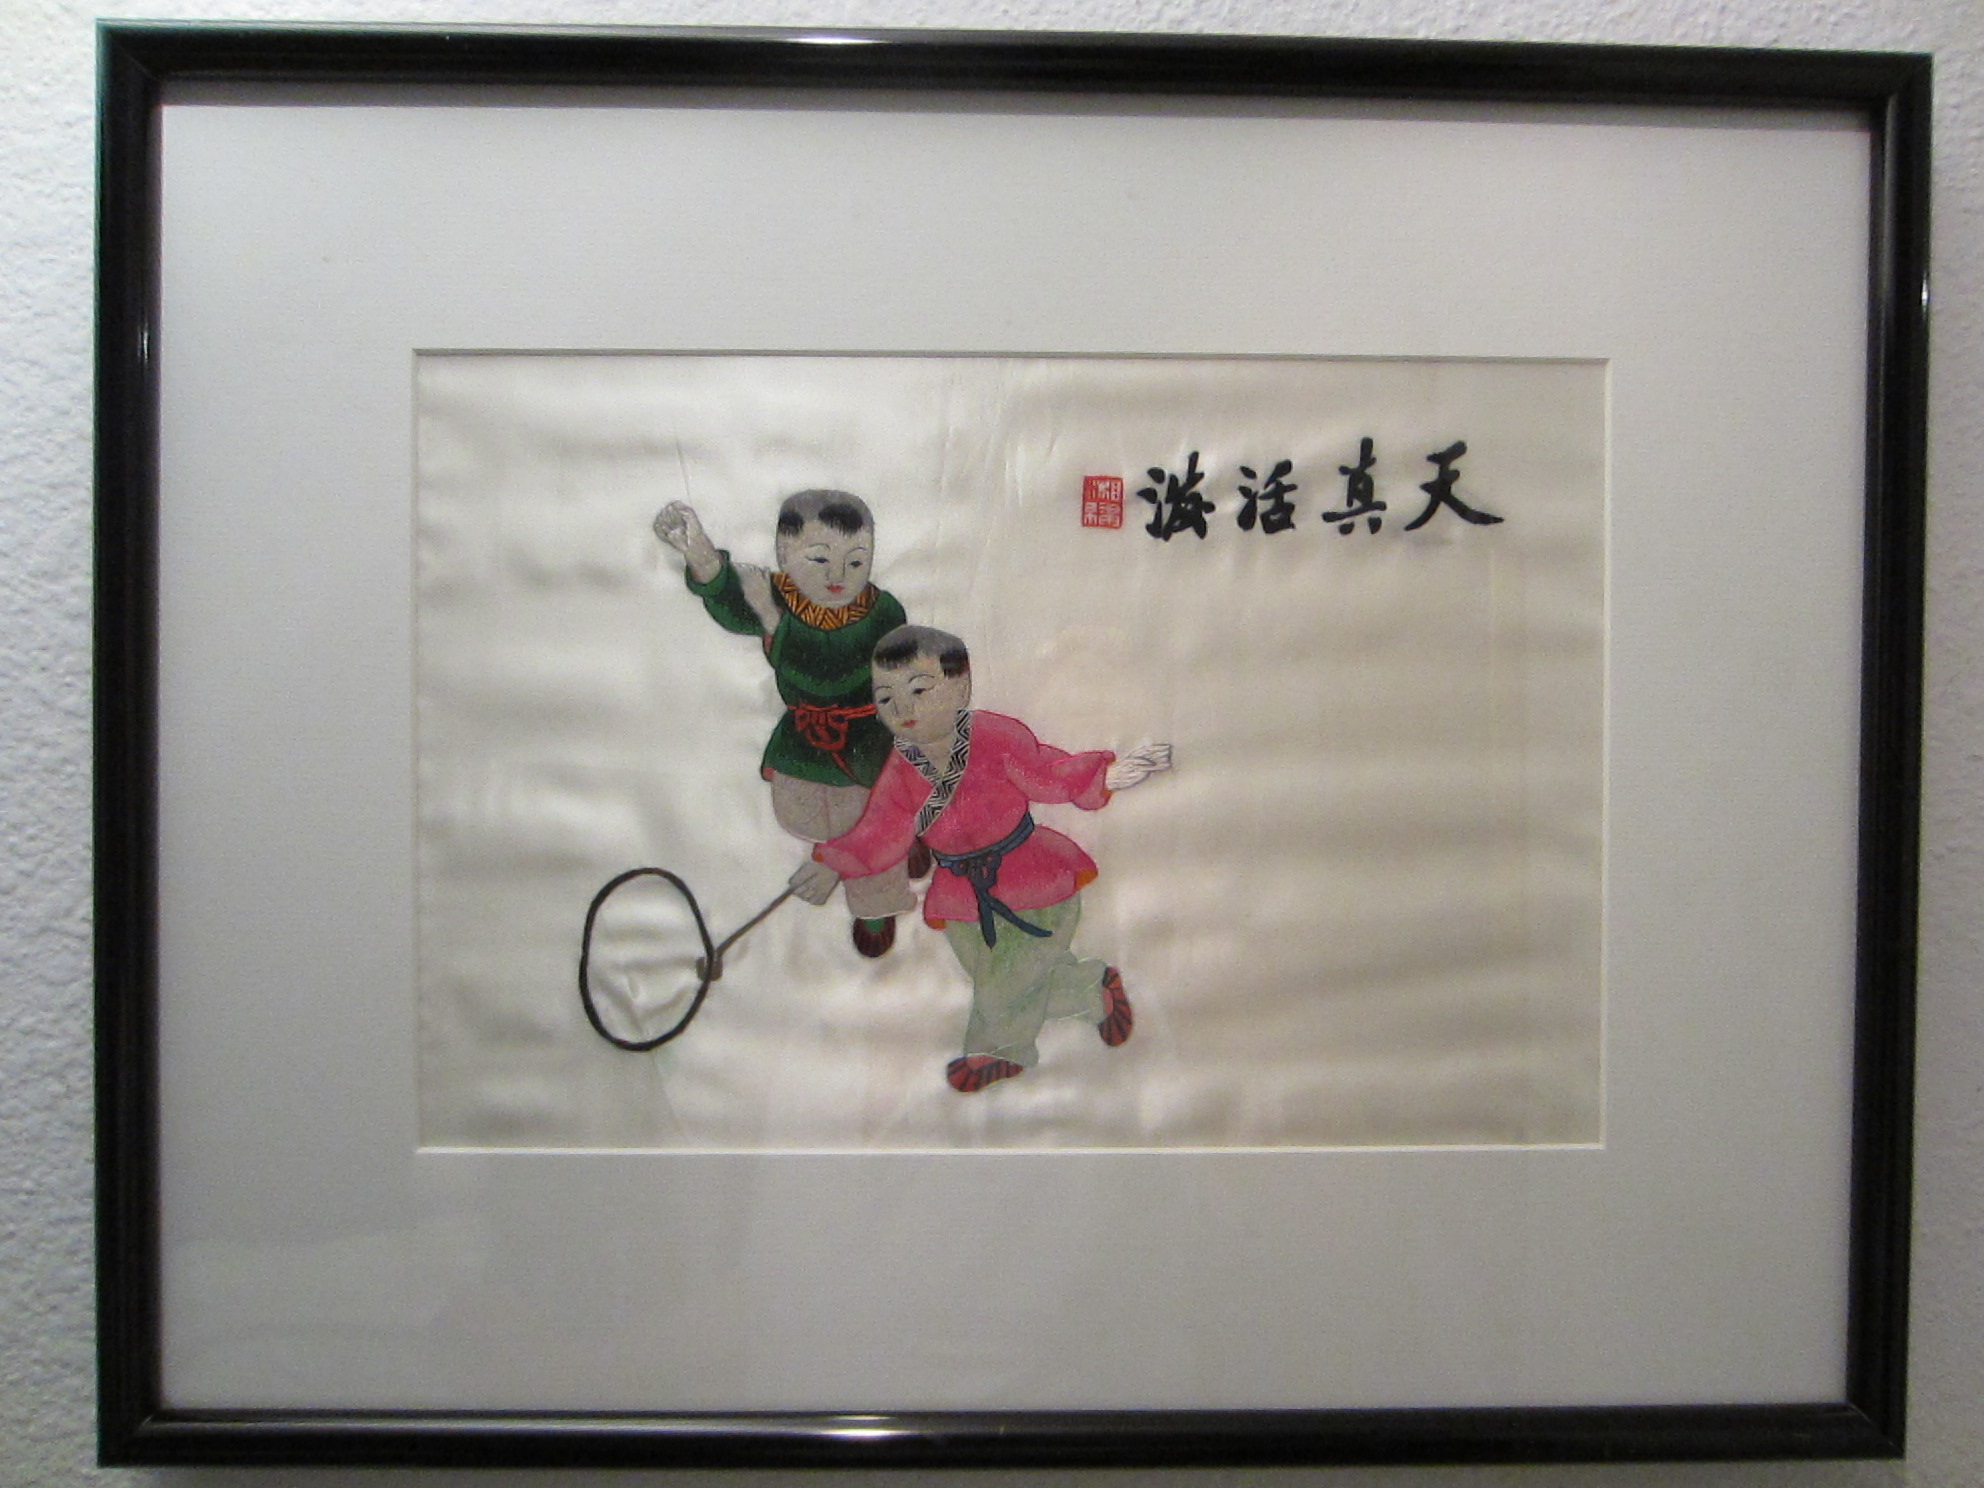 Japanese Silk Embroidery Signed Framed Art For Sale Antiques Com